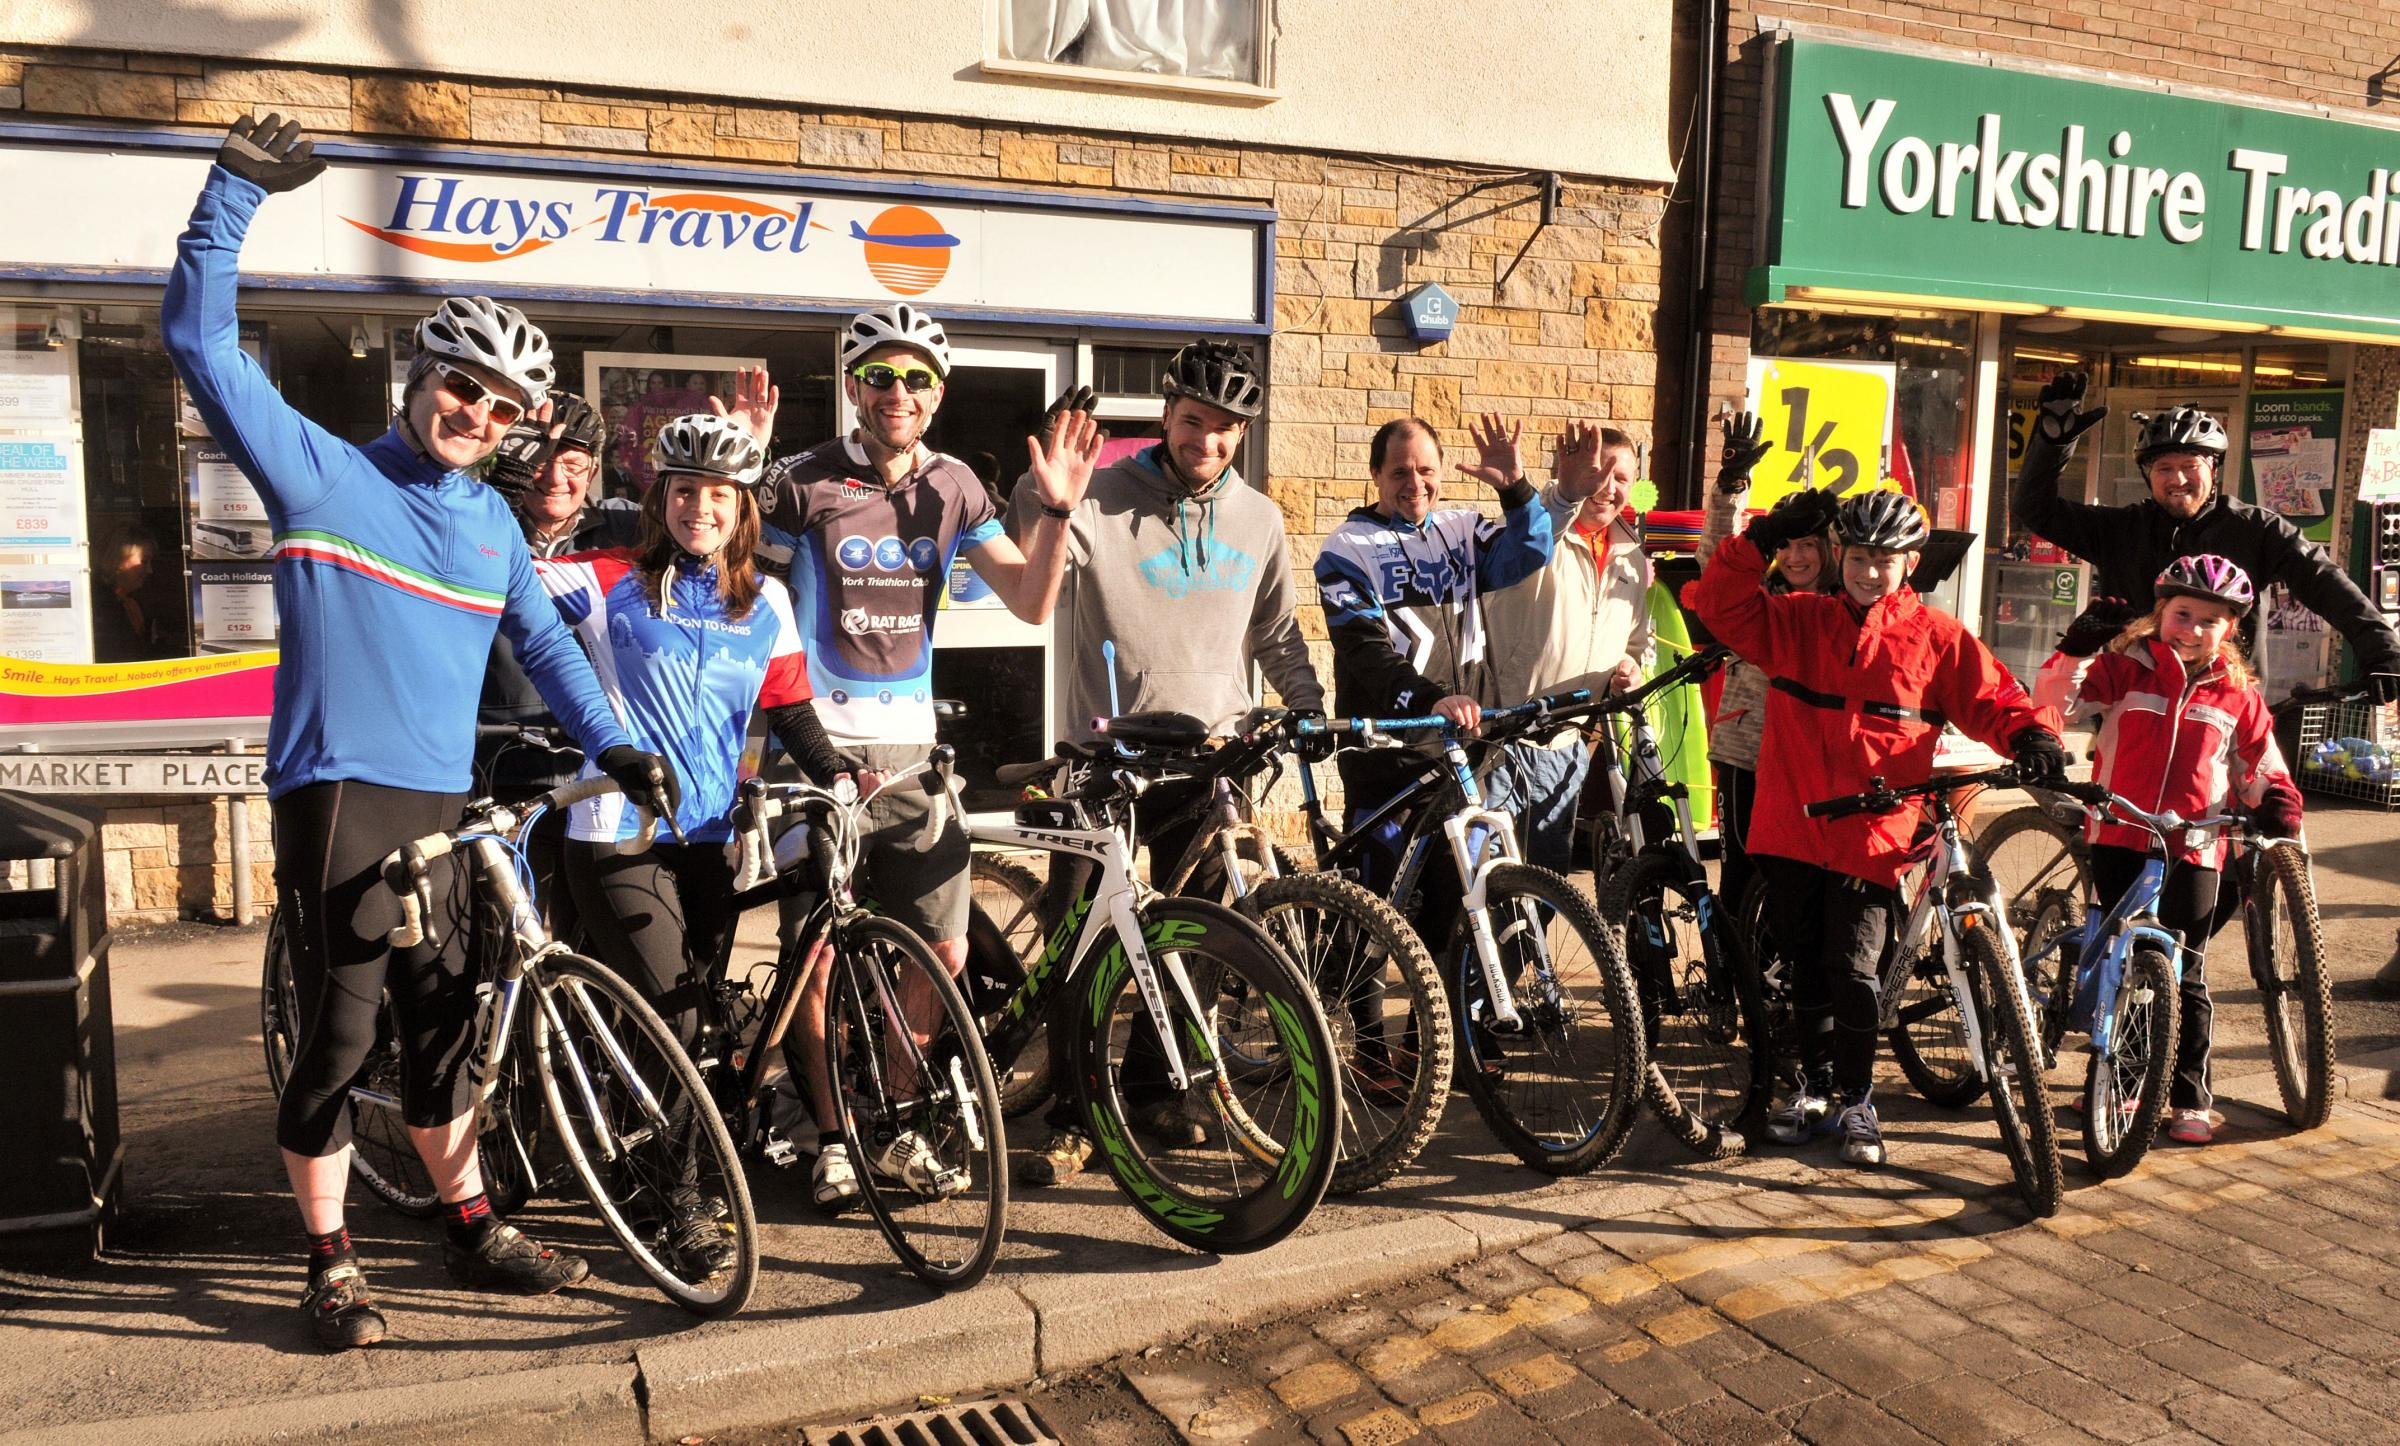 Cyclists from Pickering who are supporting the Tour de Yorkshire